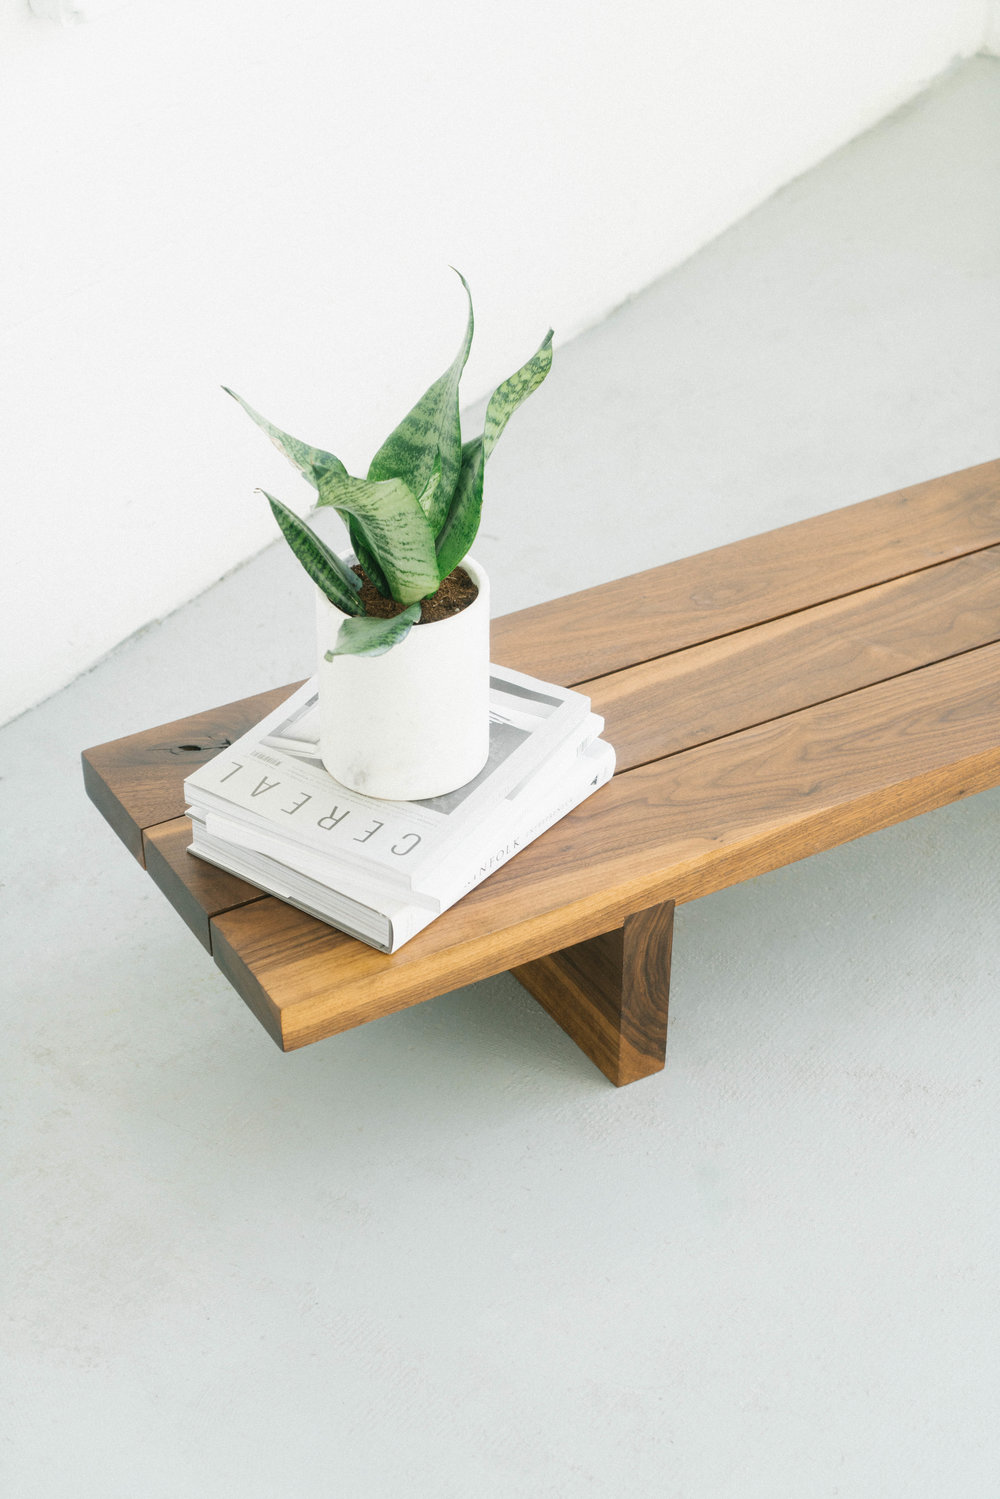 lowbench_walnut8_s.jpg